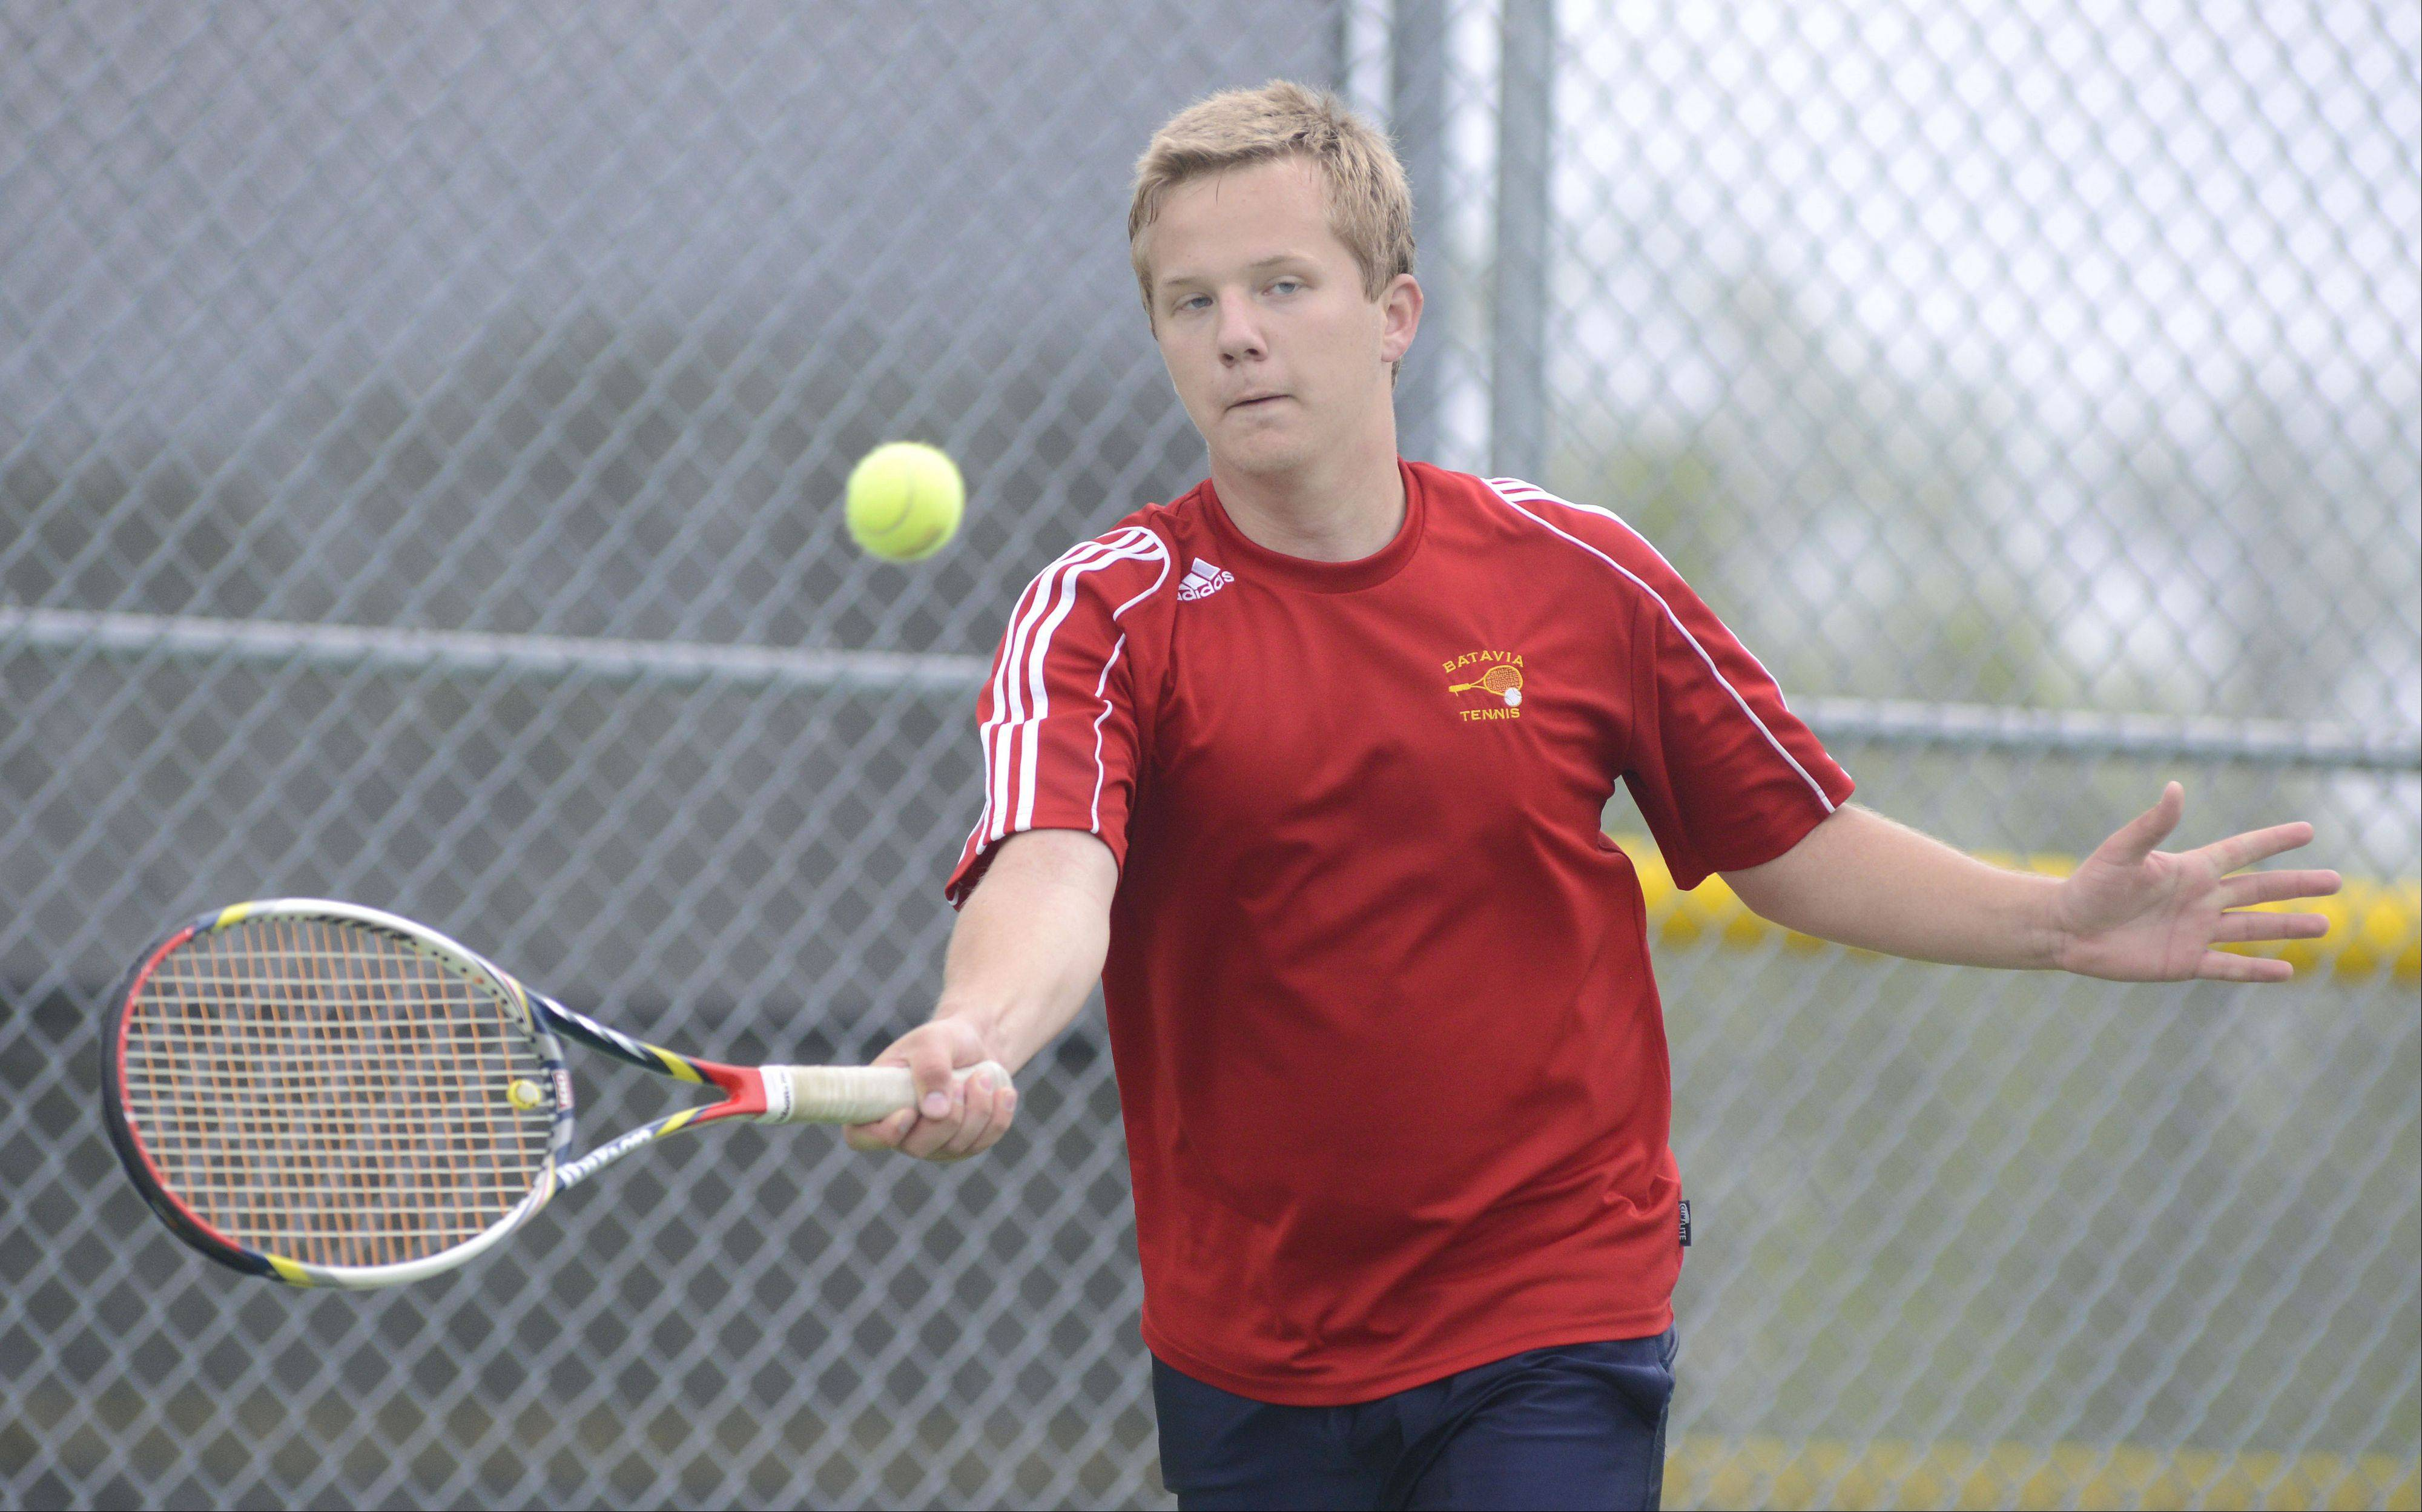 Batavia's Ryan Sterling in the first place, first singles match vs. St. Charles North's Dom Amalraj in the Upstate Eight Conference at Elgin High School on Saturday, May 11.